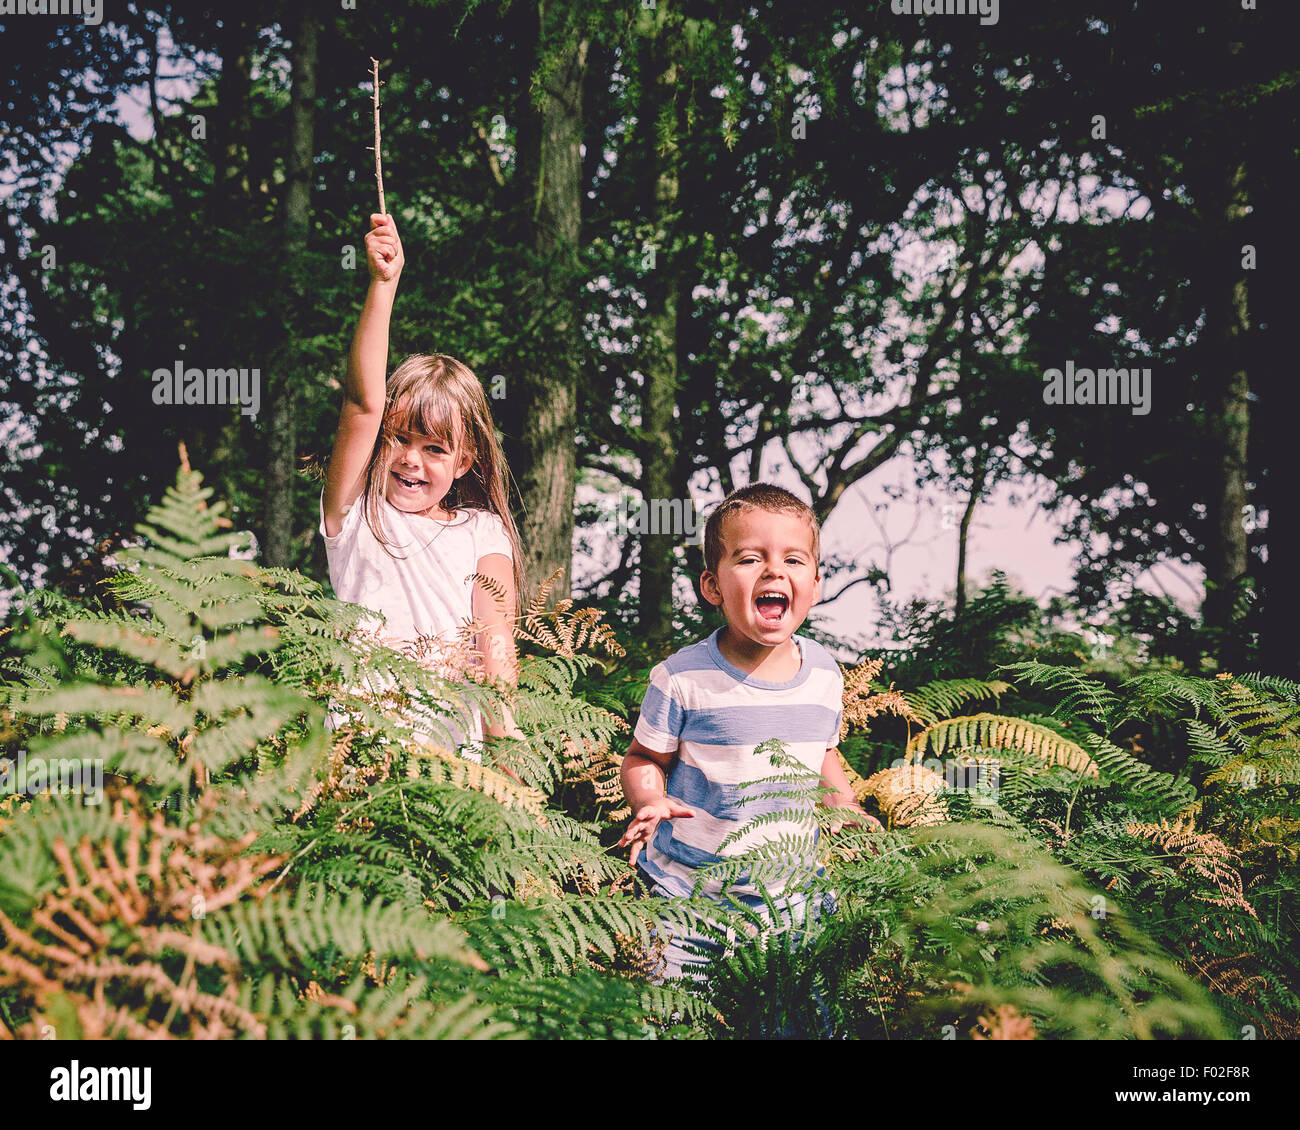 Two happy children jumping out of from behind the ferns in the forest - Stock Image